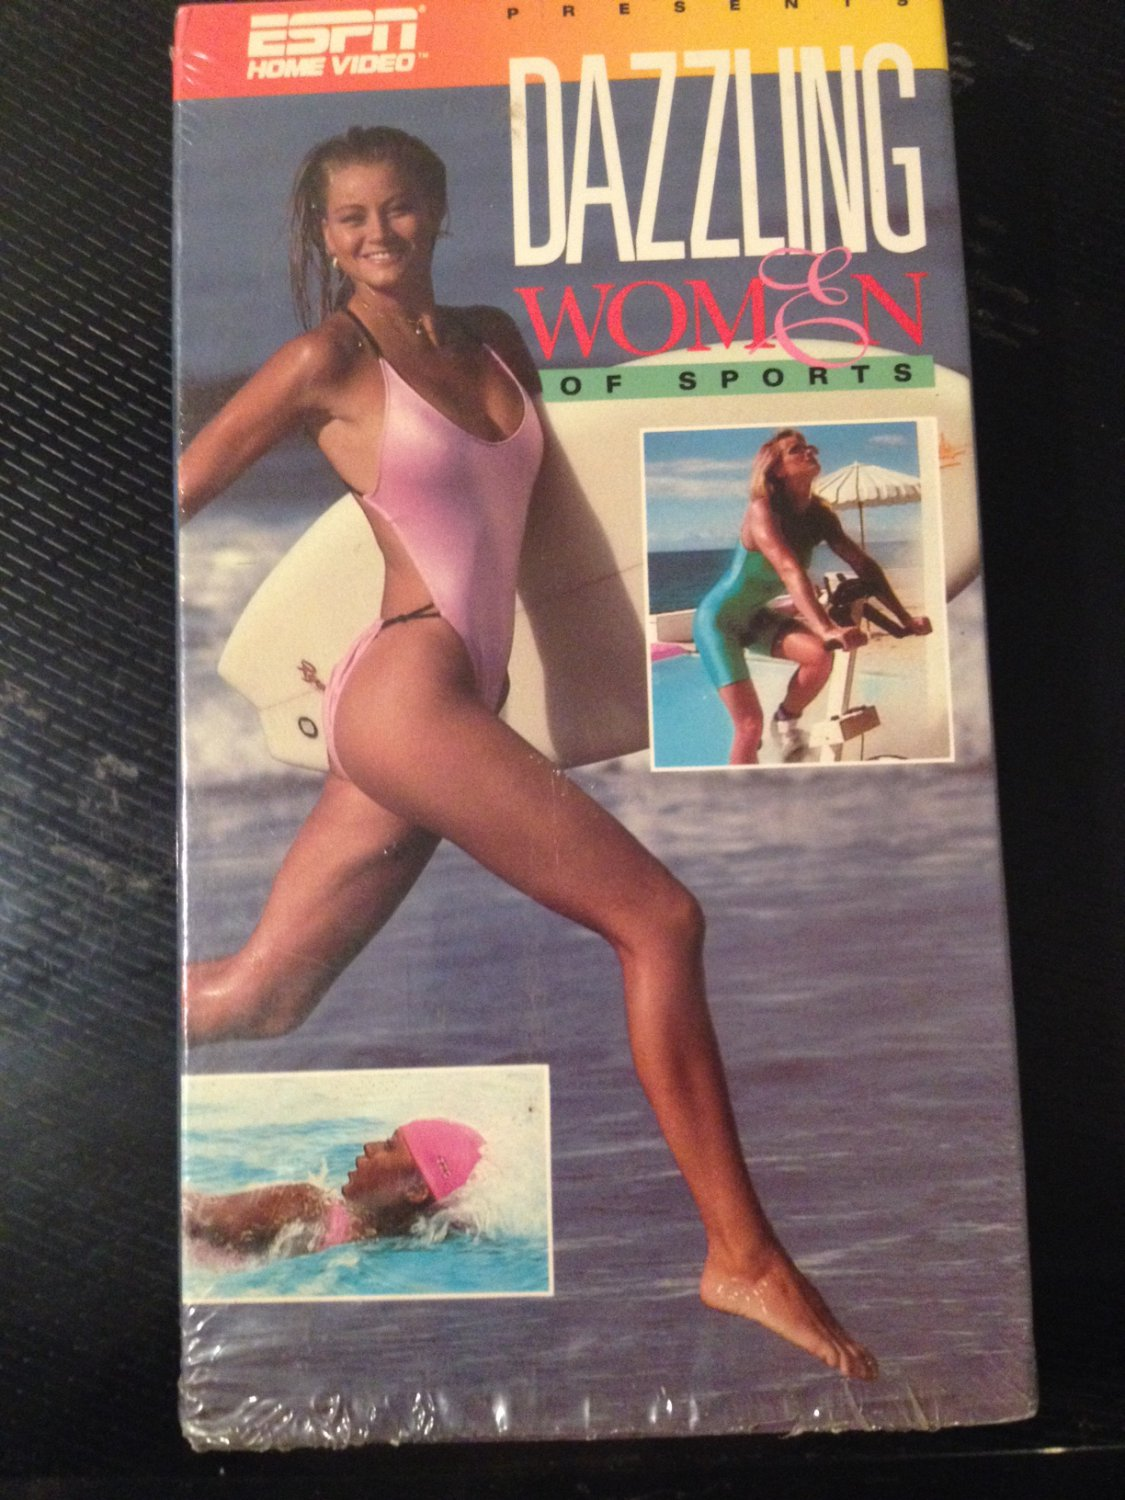 VHS - Dazzling Women of Sports - Used - NOT ON DVD